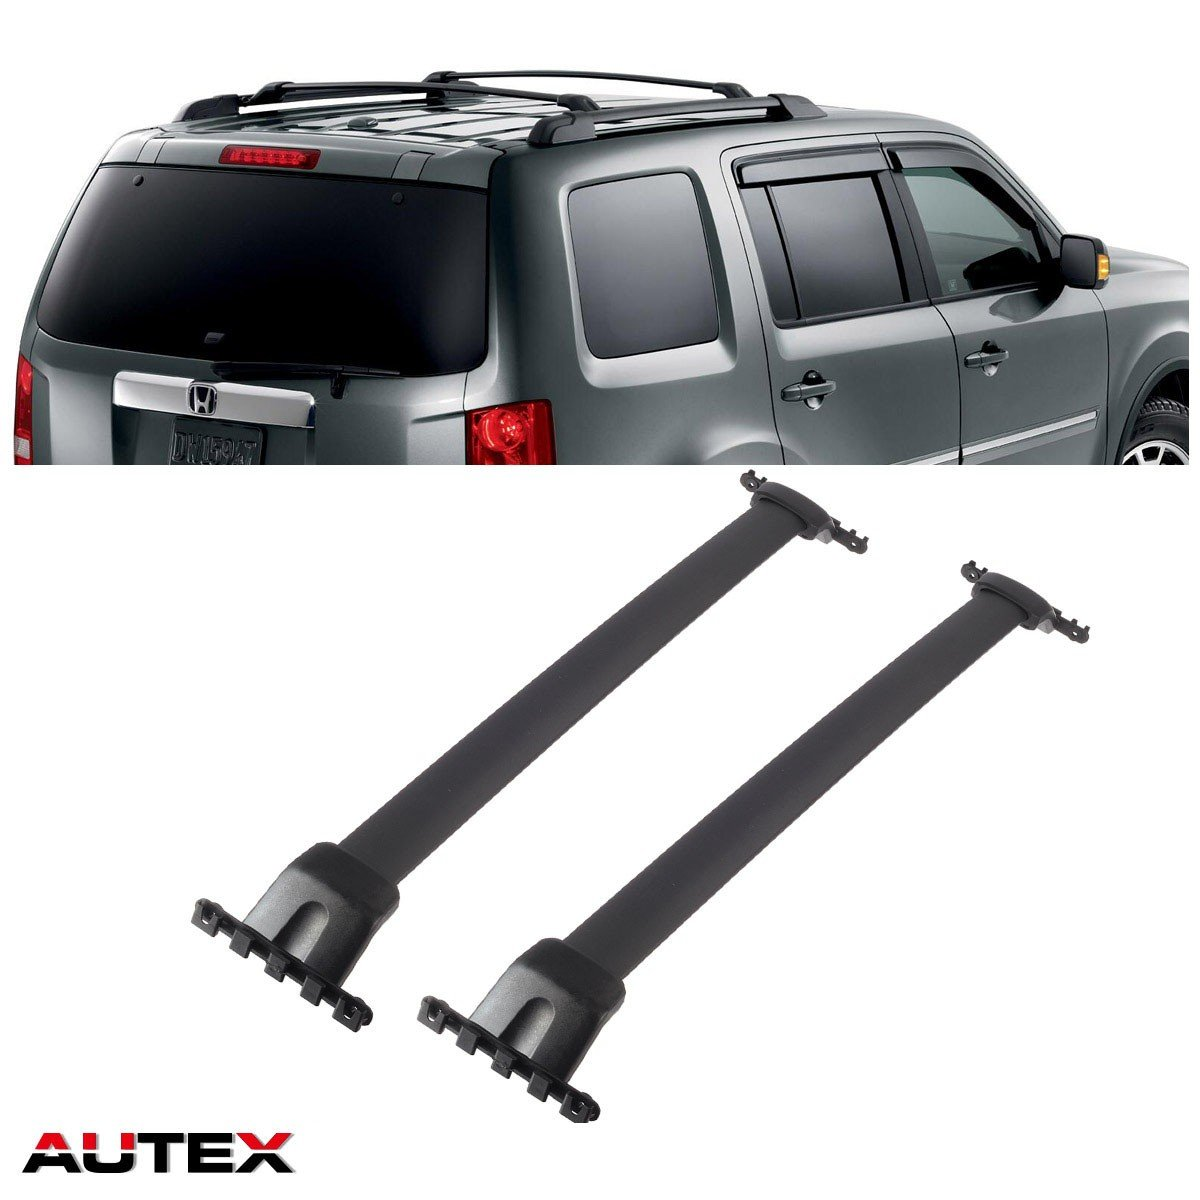 AUTEX 2Pcs/set Aluminum Roof Rack Crossbar for 2009-2015 Honda Pilot Rooftop Rail Rack Cross Bar